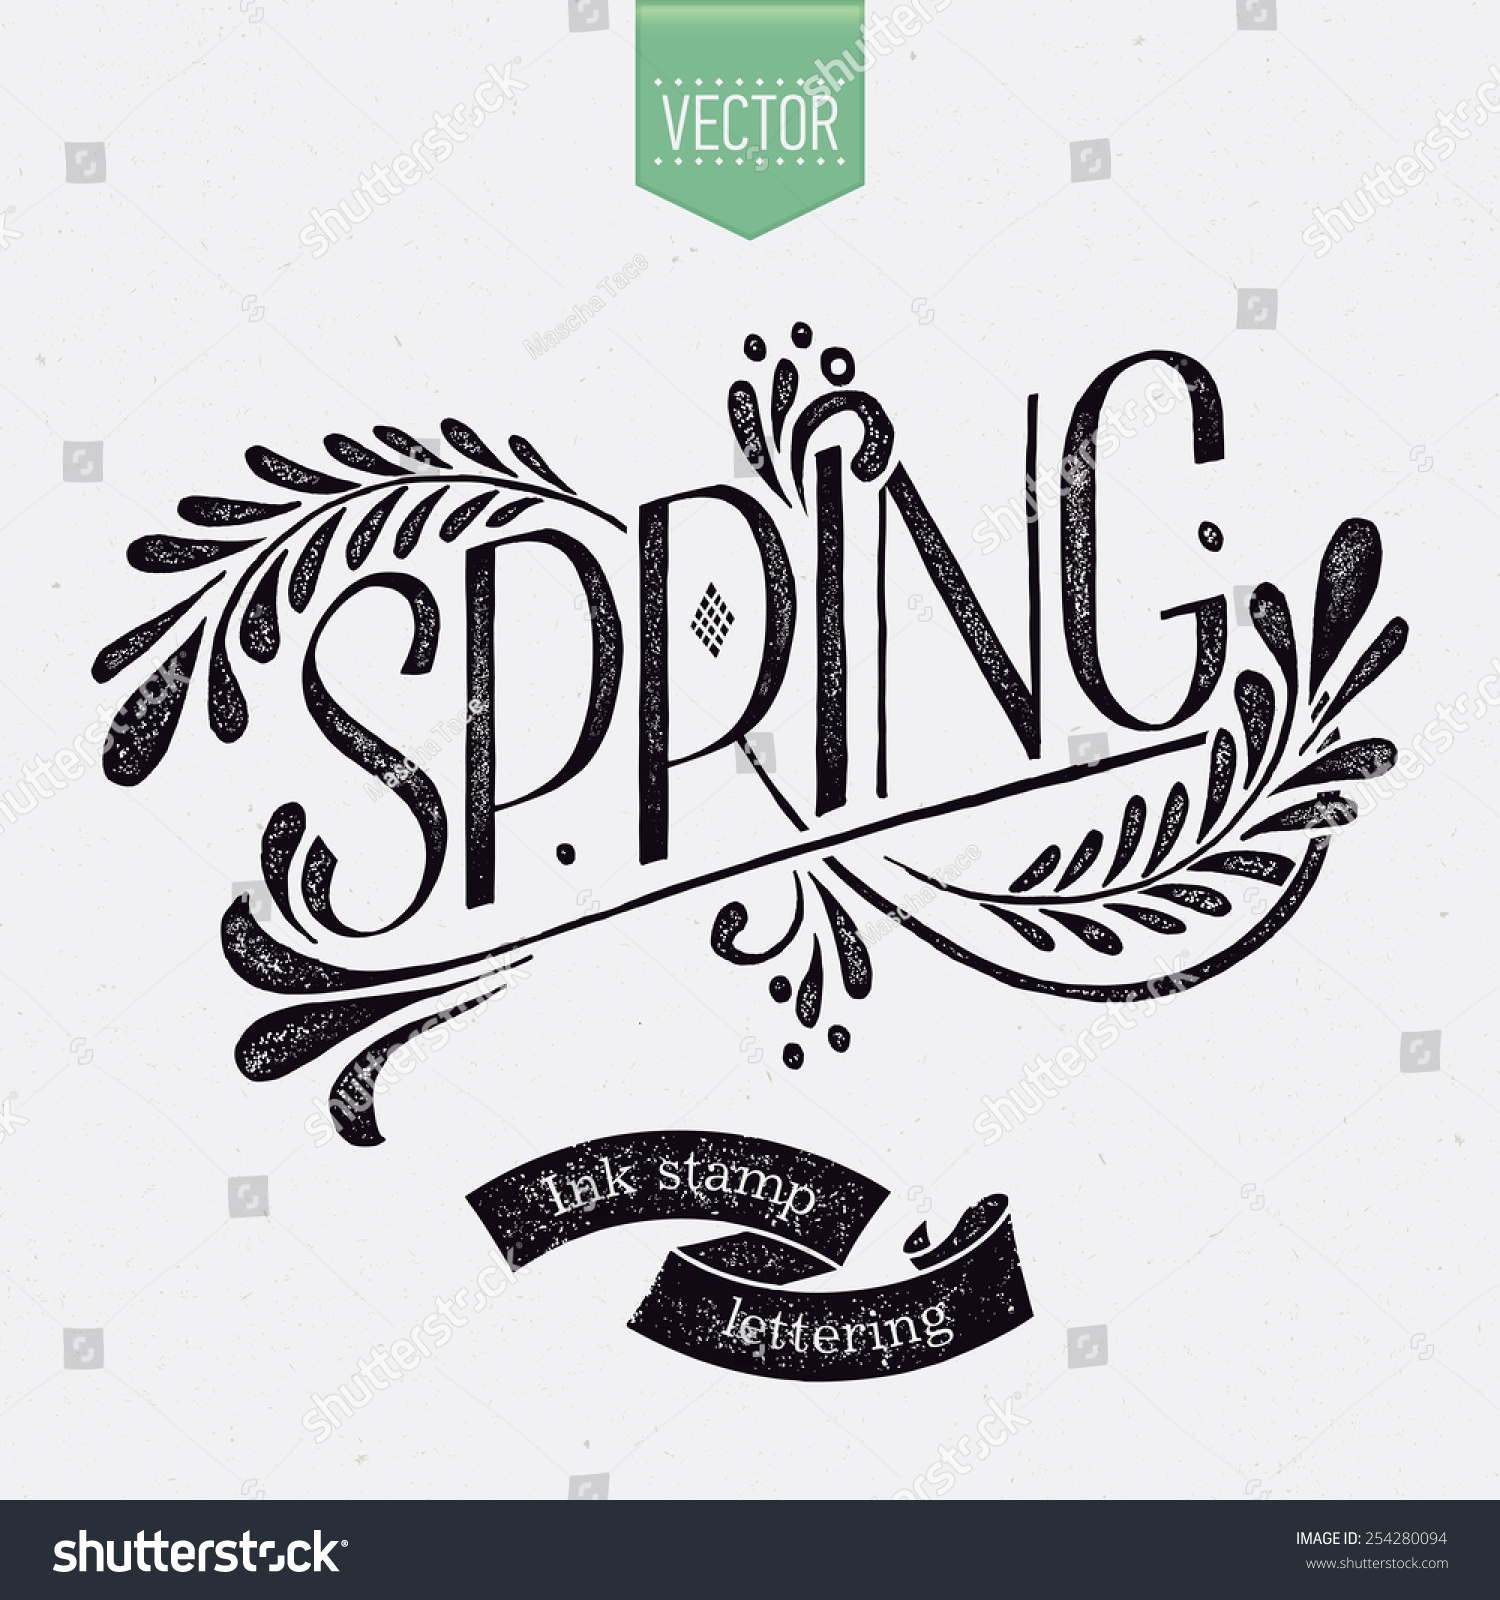 Simple Vector Hand Drawn Retro Lettering Design Element On Spring With Floral Decorative Elements And Ink